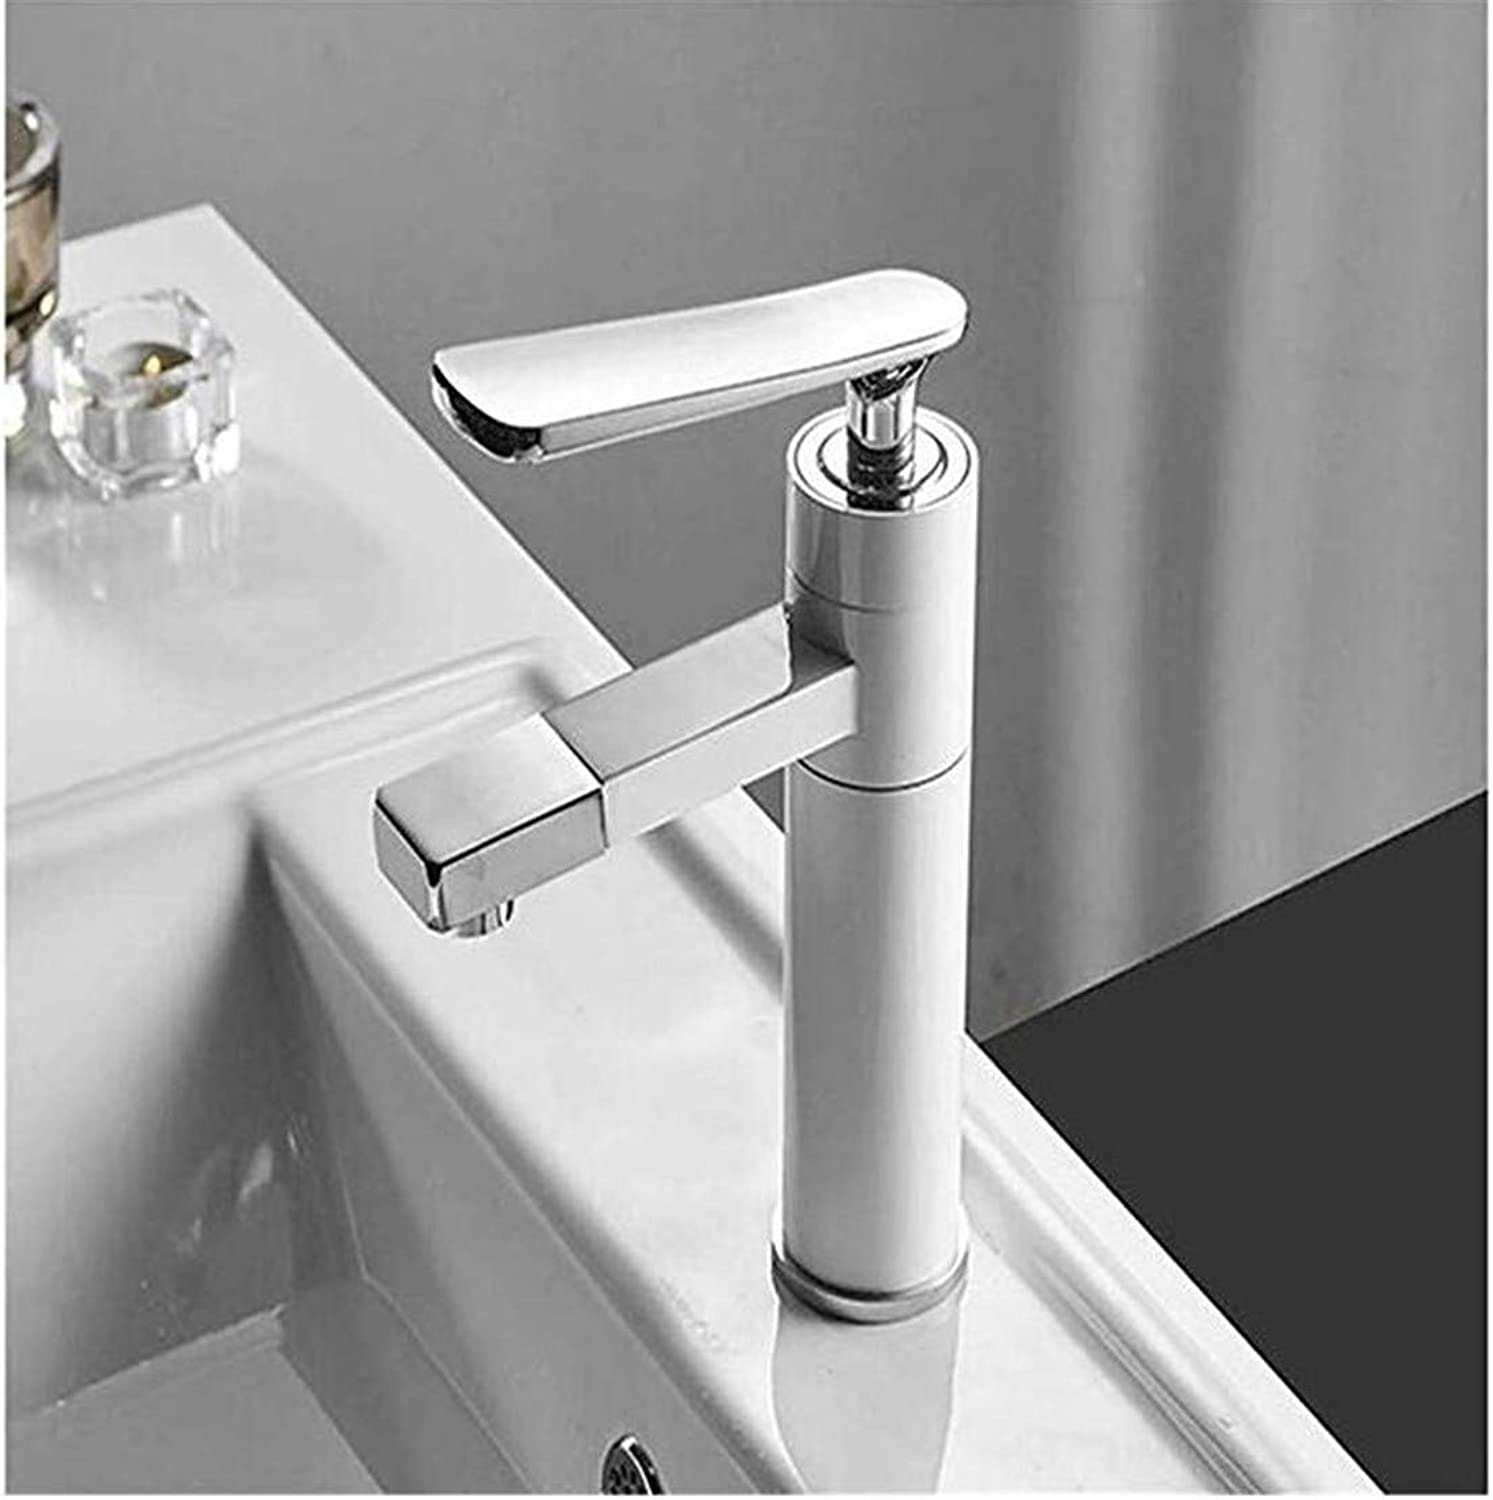 Luxury Modern Hot and Cold Faucet Vintage Platingmodern Sink Faucet Single Handle Hole Deck Mounted Wash Hot Cold Mixer Tap